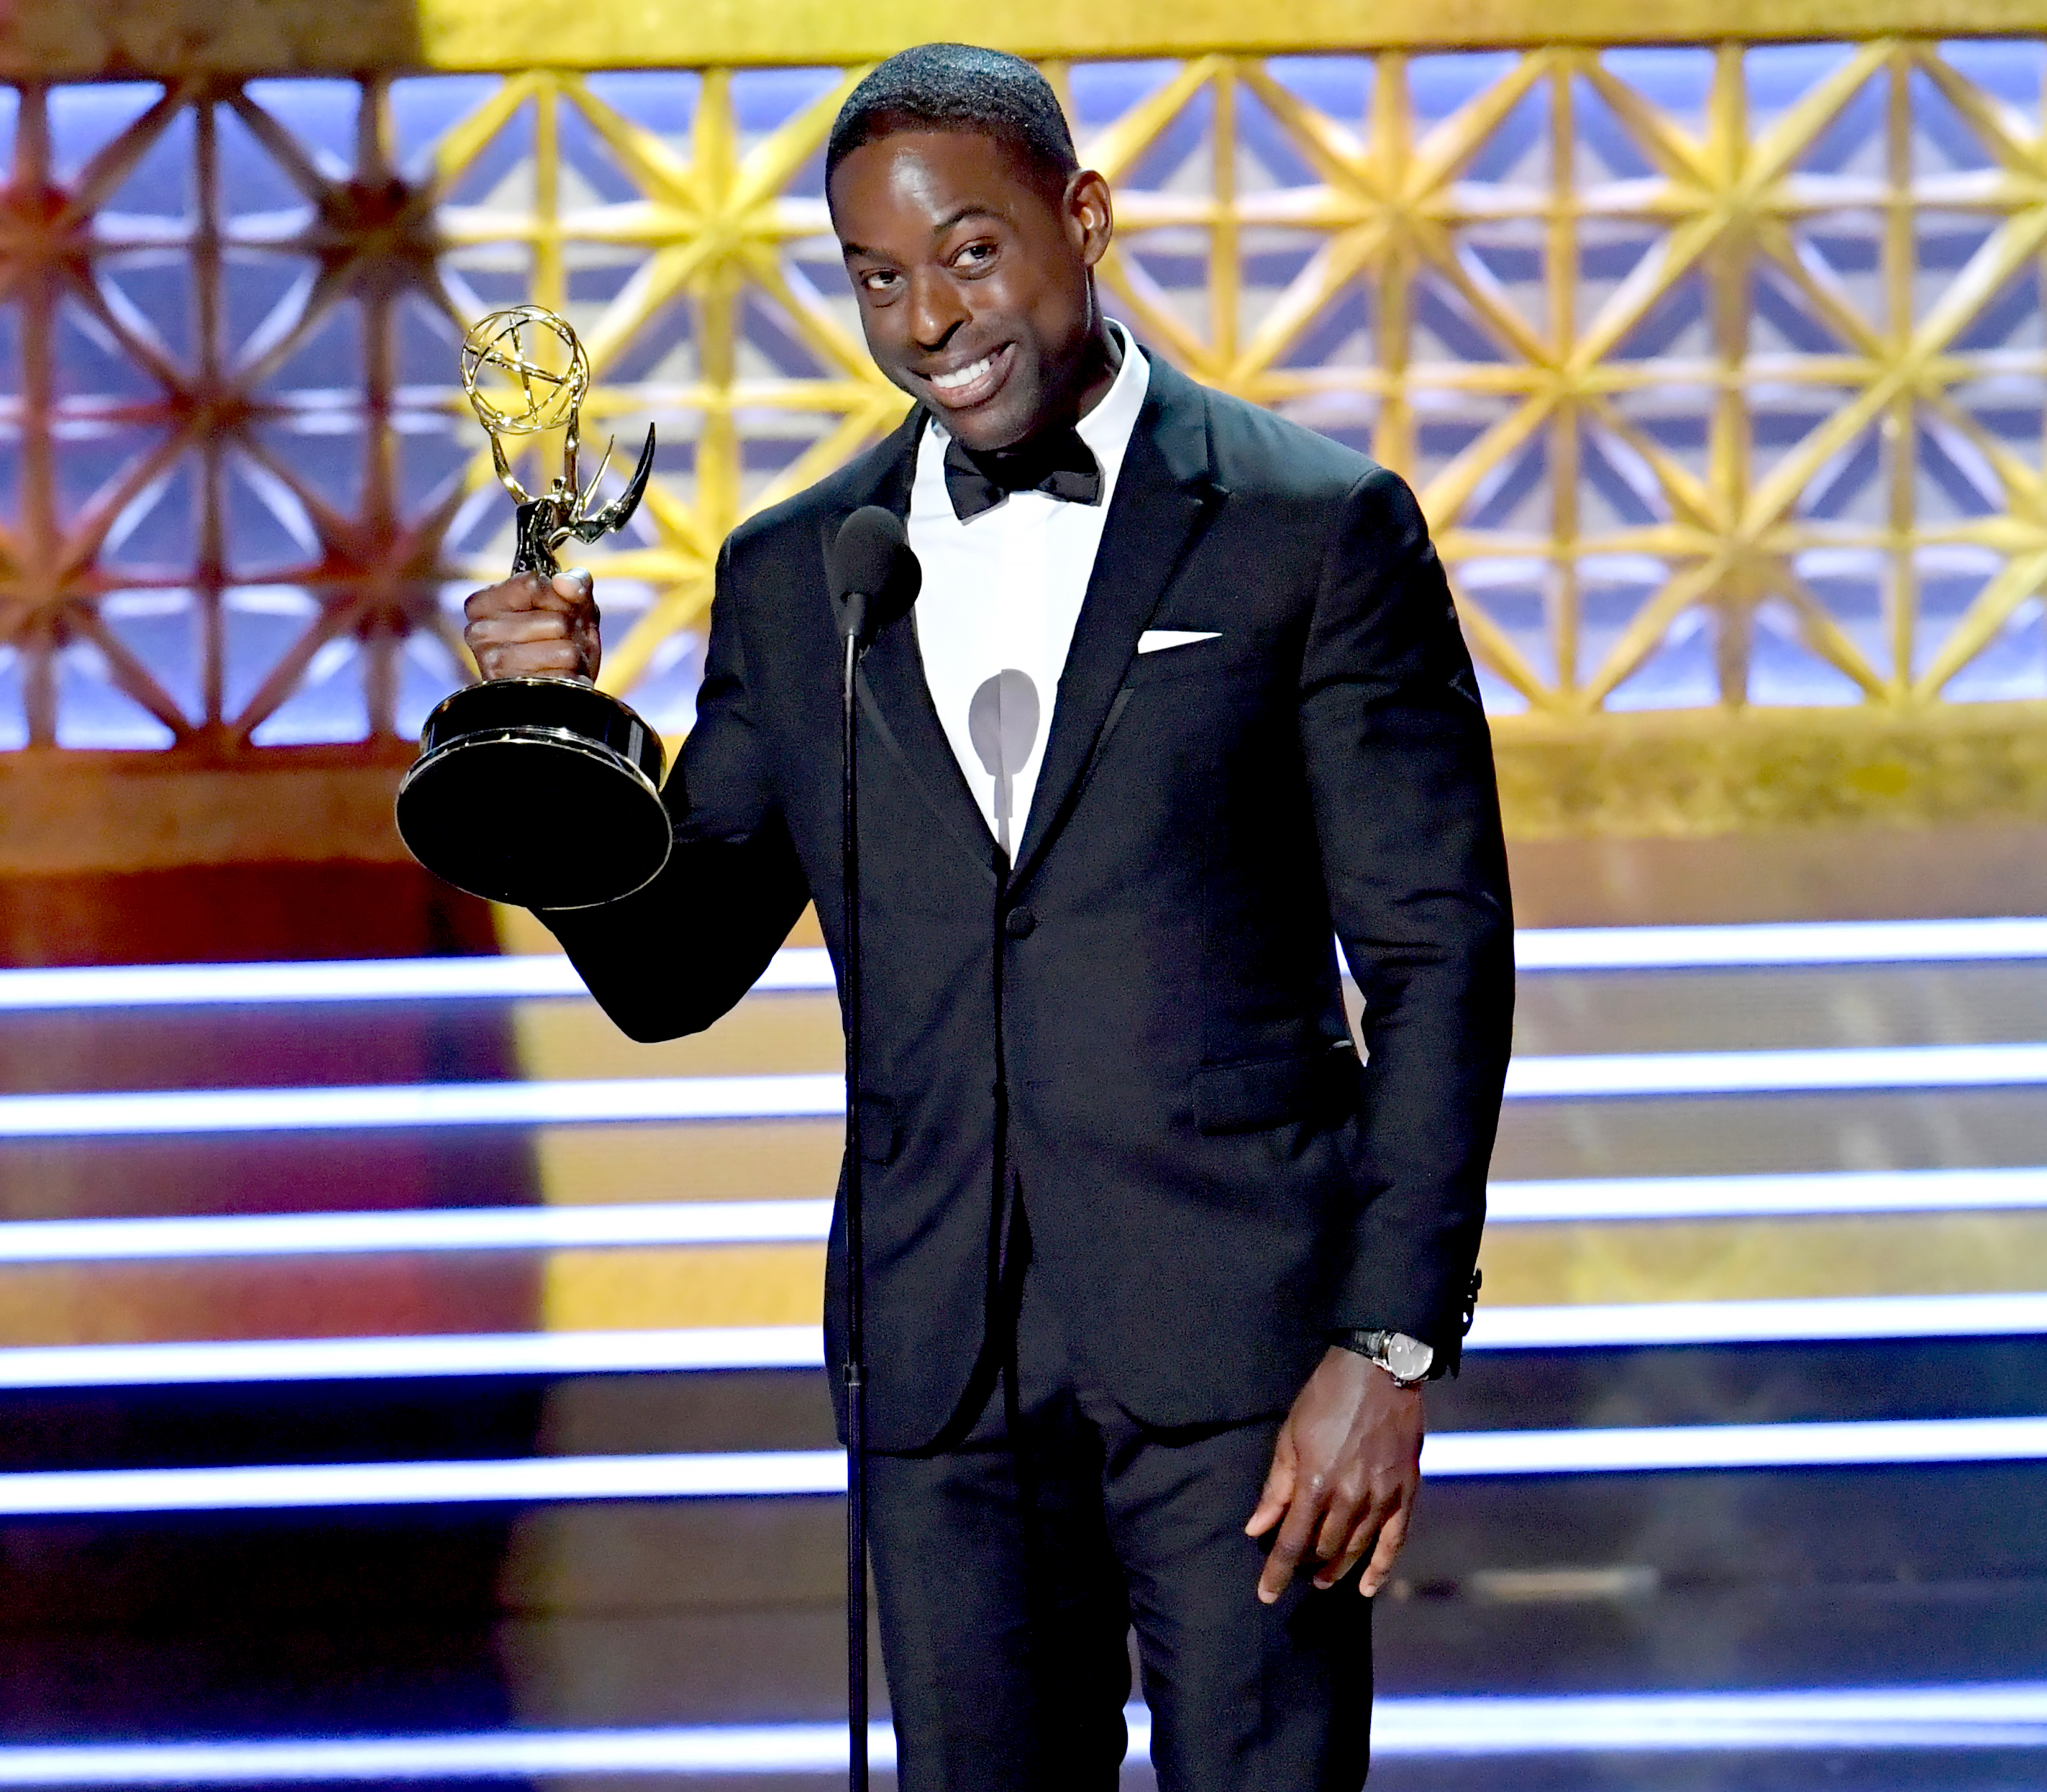 Sterling K. Brown accepts the Outstanding Lead Actor in a Drama Series award for 'This Is Us' onstage during the 69th Annual Primetime Emmy Awards at Microsoft Theater on September 17, 2017 in Los Angeles, California.